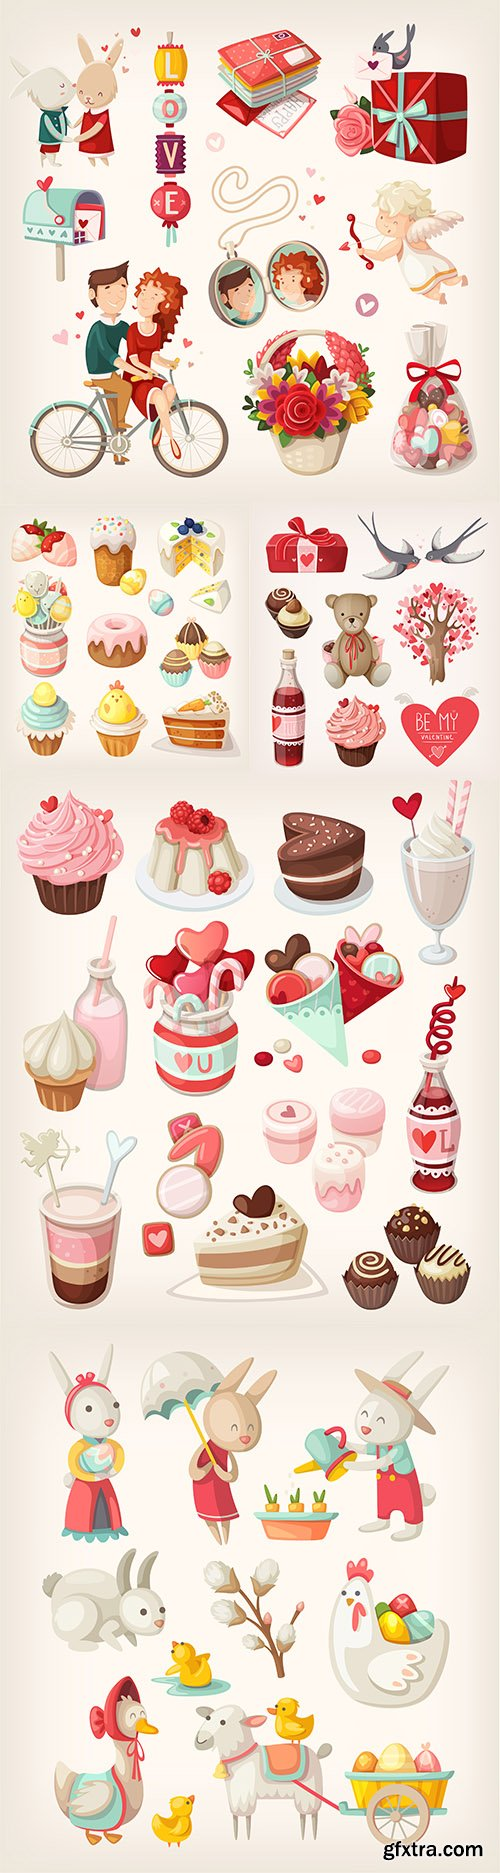 Easter characters and romantic objects colection icons